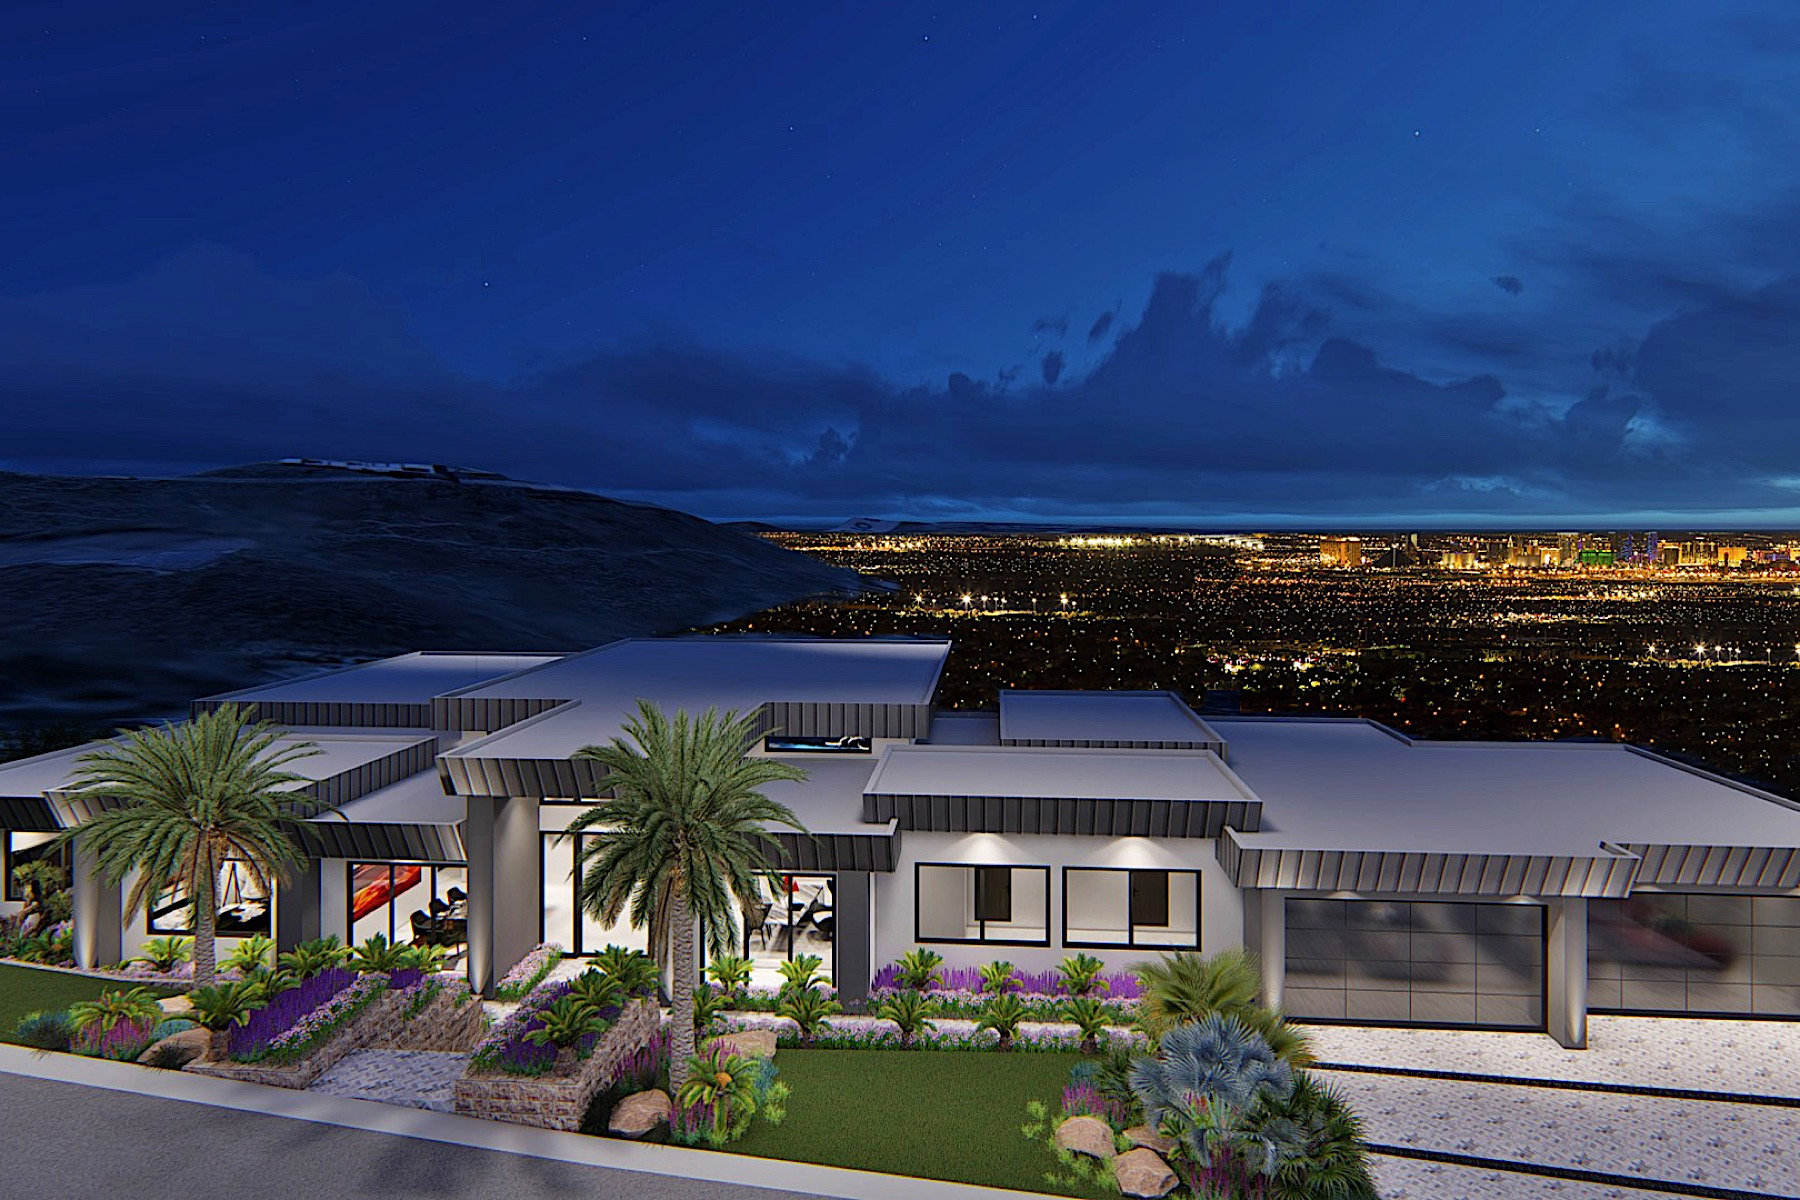 Single Family Homes for Active at Aries - New Modern 1 Story with Strip Views & 7 Car Garage 508 Dragon Gate Ct Henderson, Nevada 89012 United States